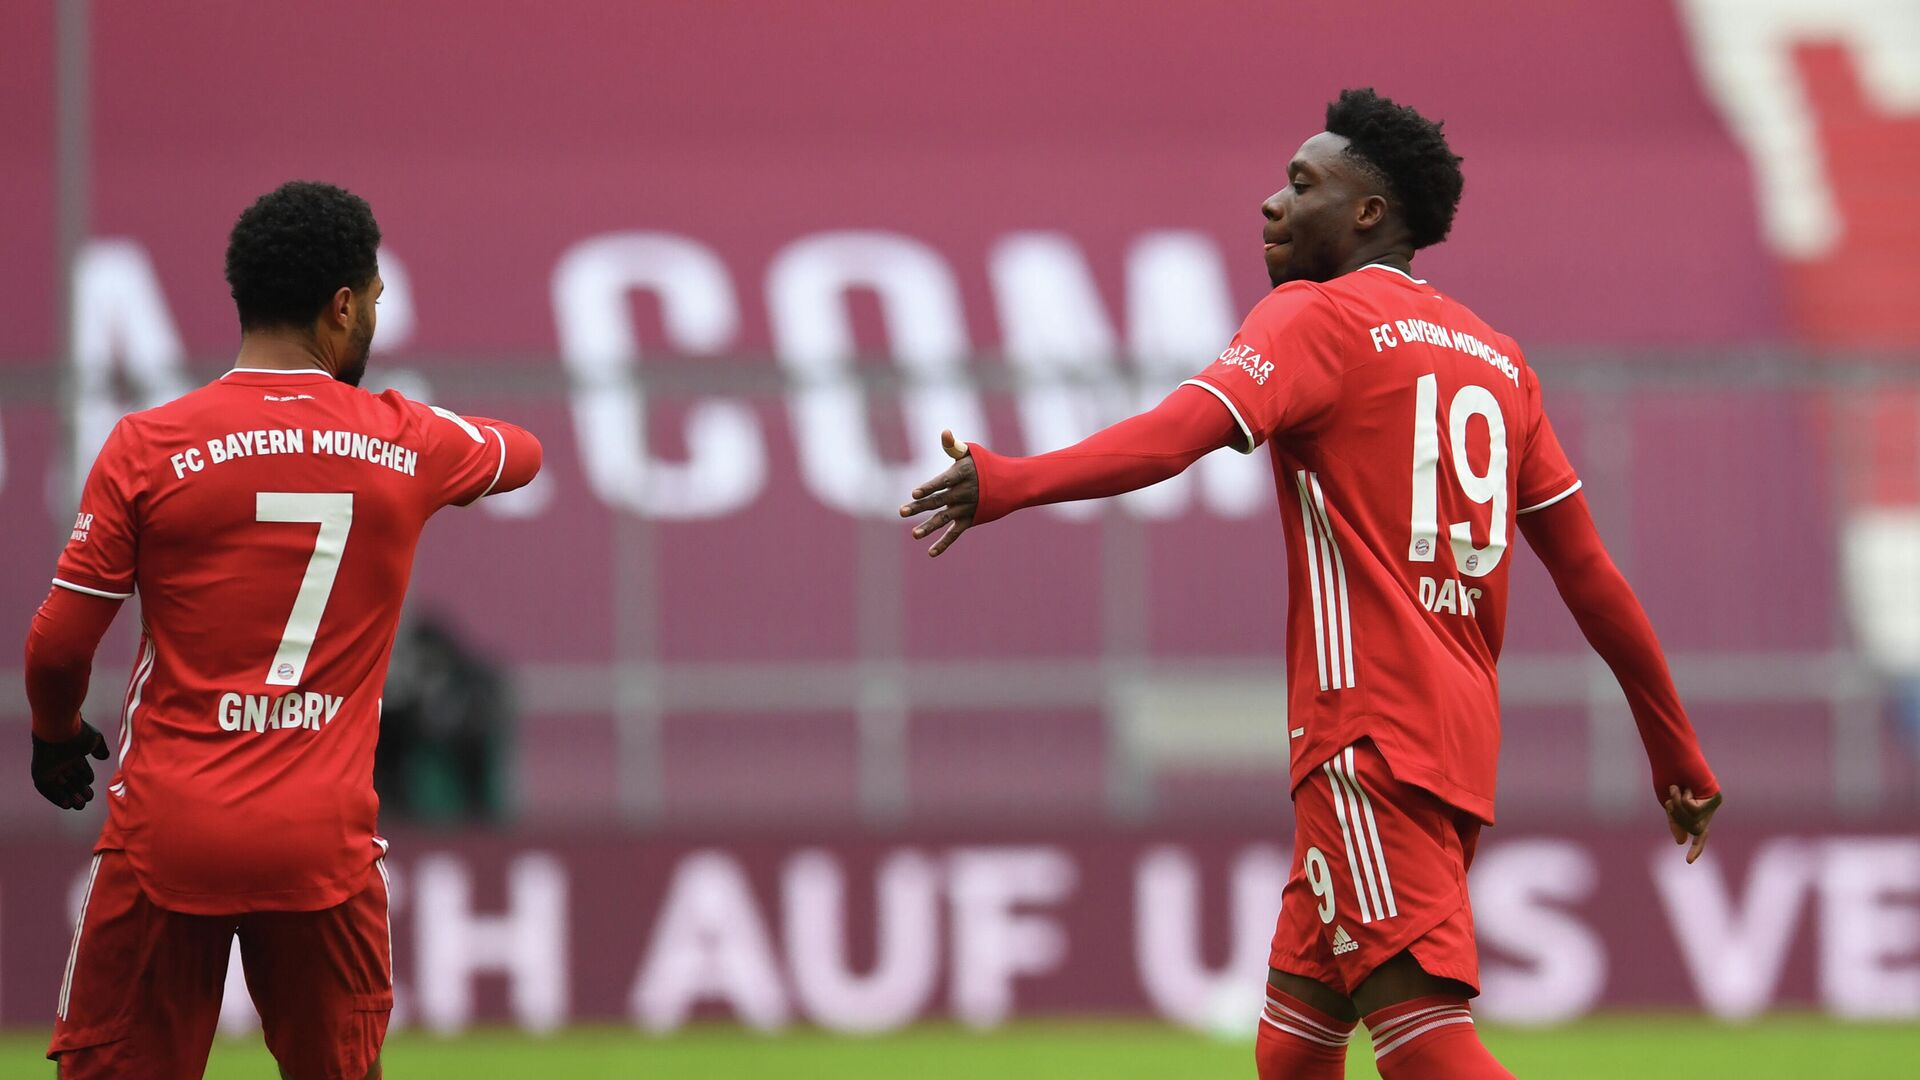 Soccer Football - Bundesliga - Bayern Munich v VfB Stuttgart - Allianz Arena, Munich, Germany - March 20, 2021 Bayern Munich's Alphonso Davies walks past Serge Gnabry as he leaves the pitch after being sent off Pool via REUTERS/Andreas Gebert DFL regulations prohibit any use of photographs as image sequences and/or quasi-video. - РИА Новости, 1920, 24.03.2021